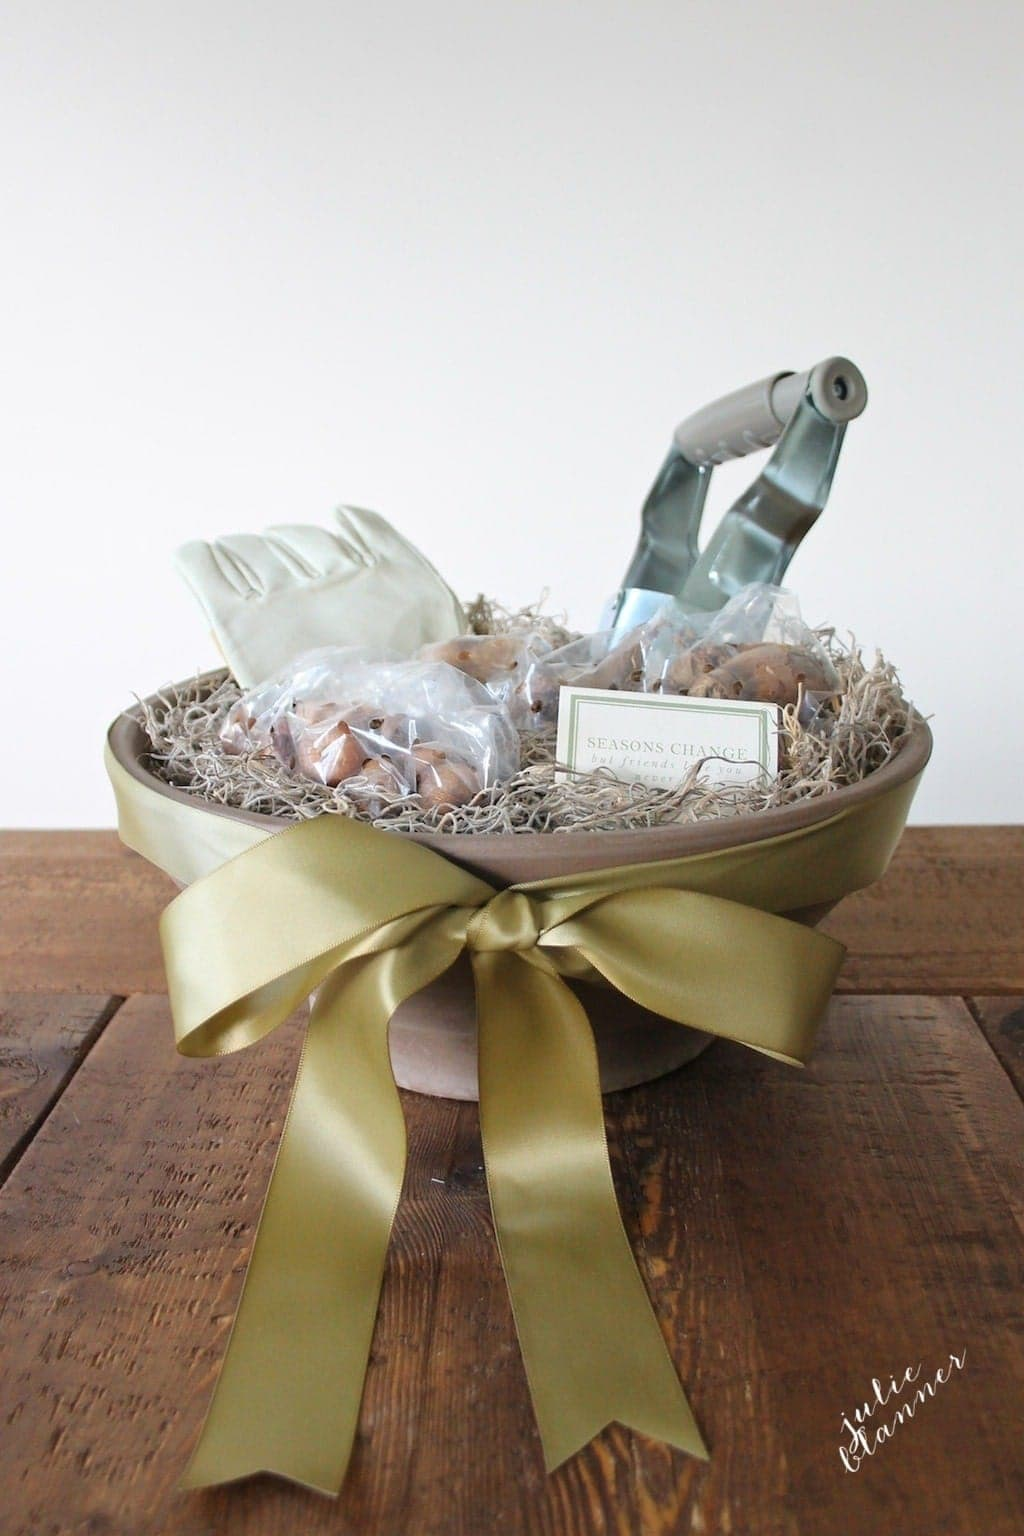 Gardening Basket Gift Ideas gardening gift ideas post image for mothers day classic gardening gift basket http Christmas Gifts In A Basket Ideas Gardening Gift Basket